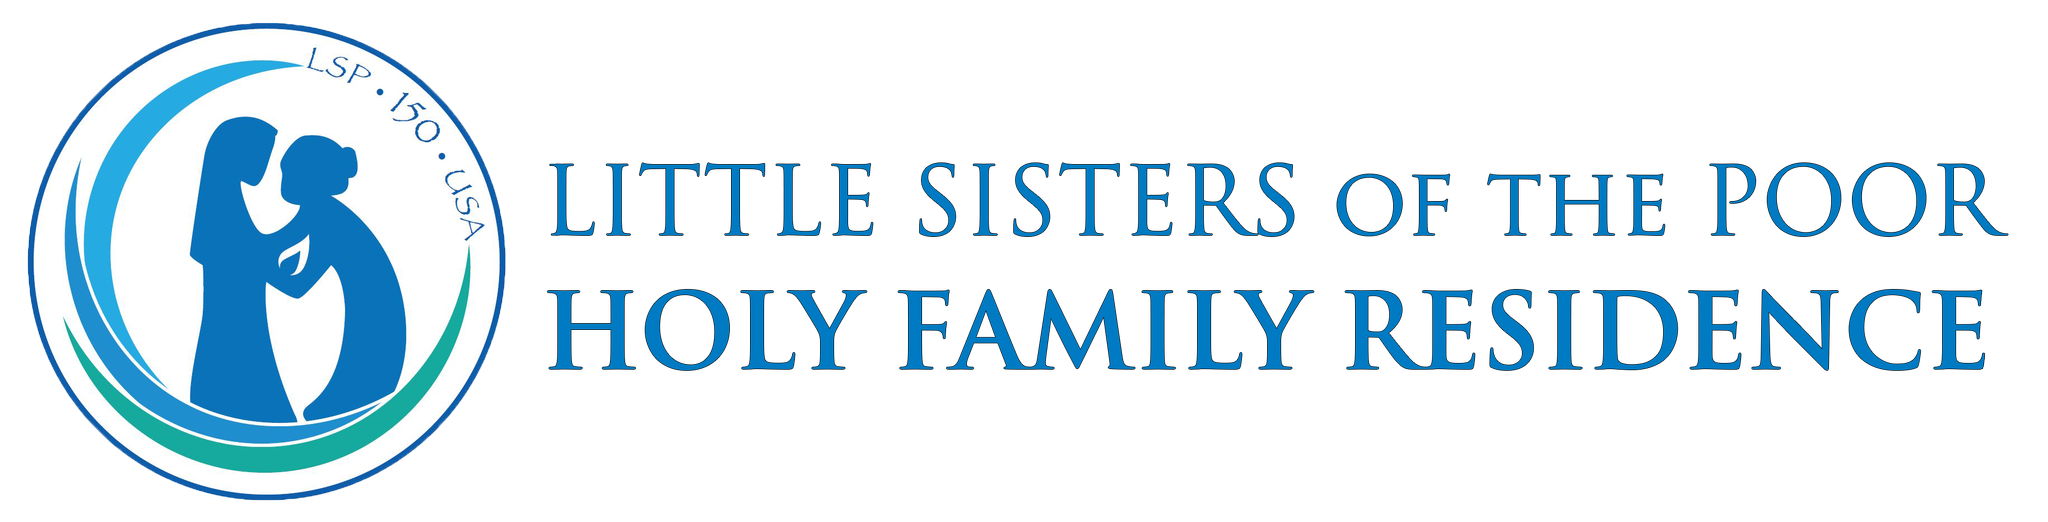 Little Sisters of the Poor Scranton